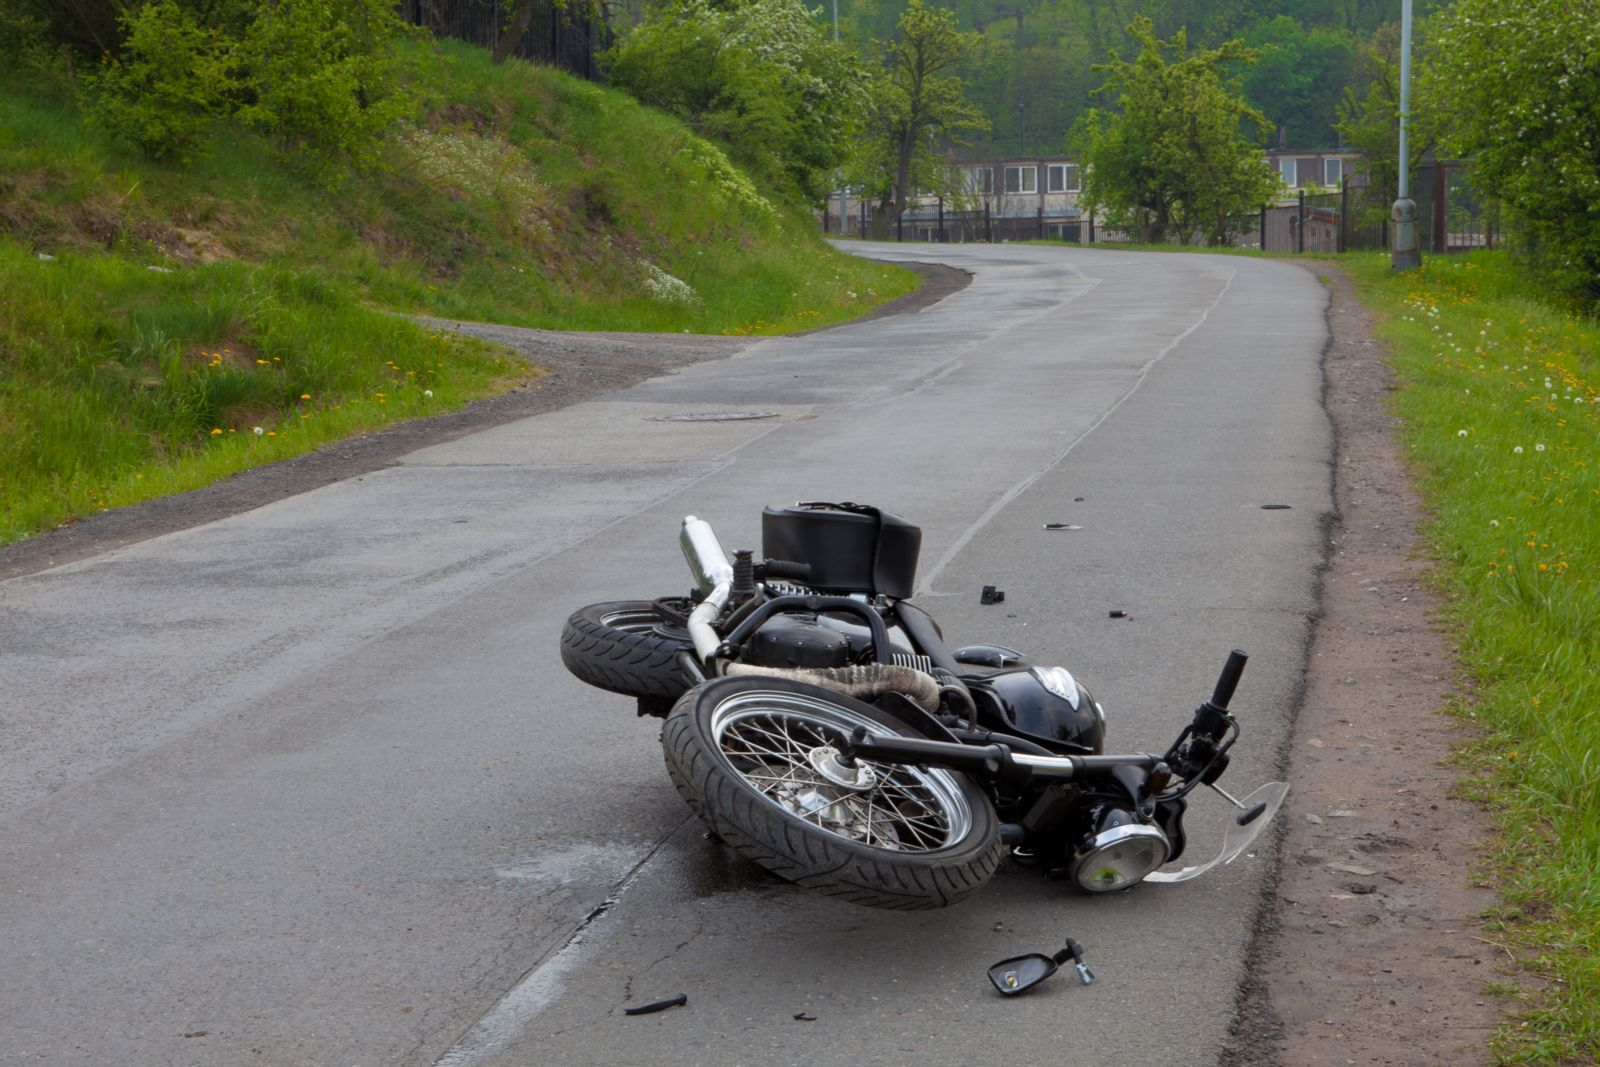 Motorcycle on the Road After an Accident